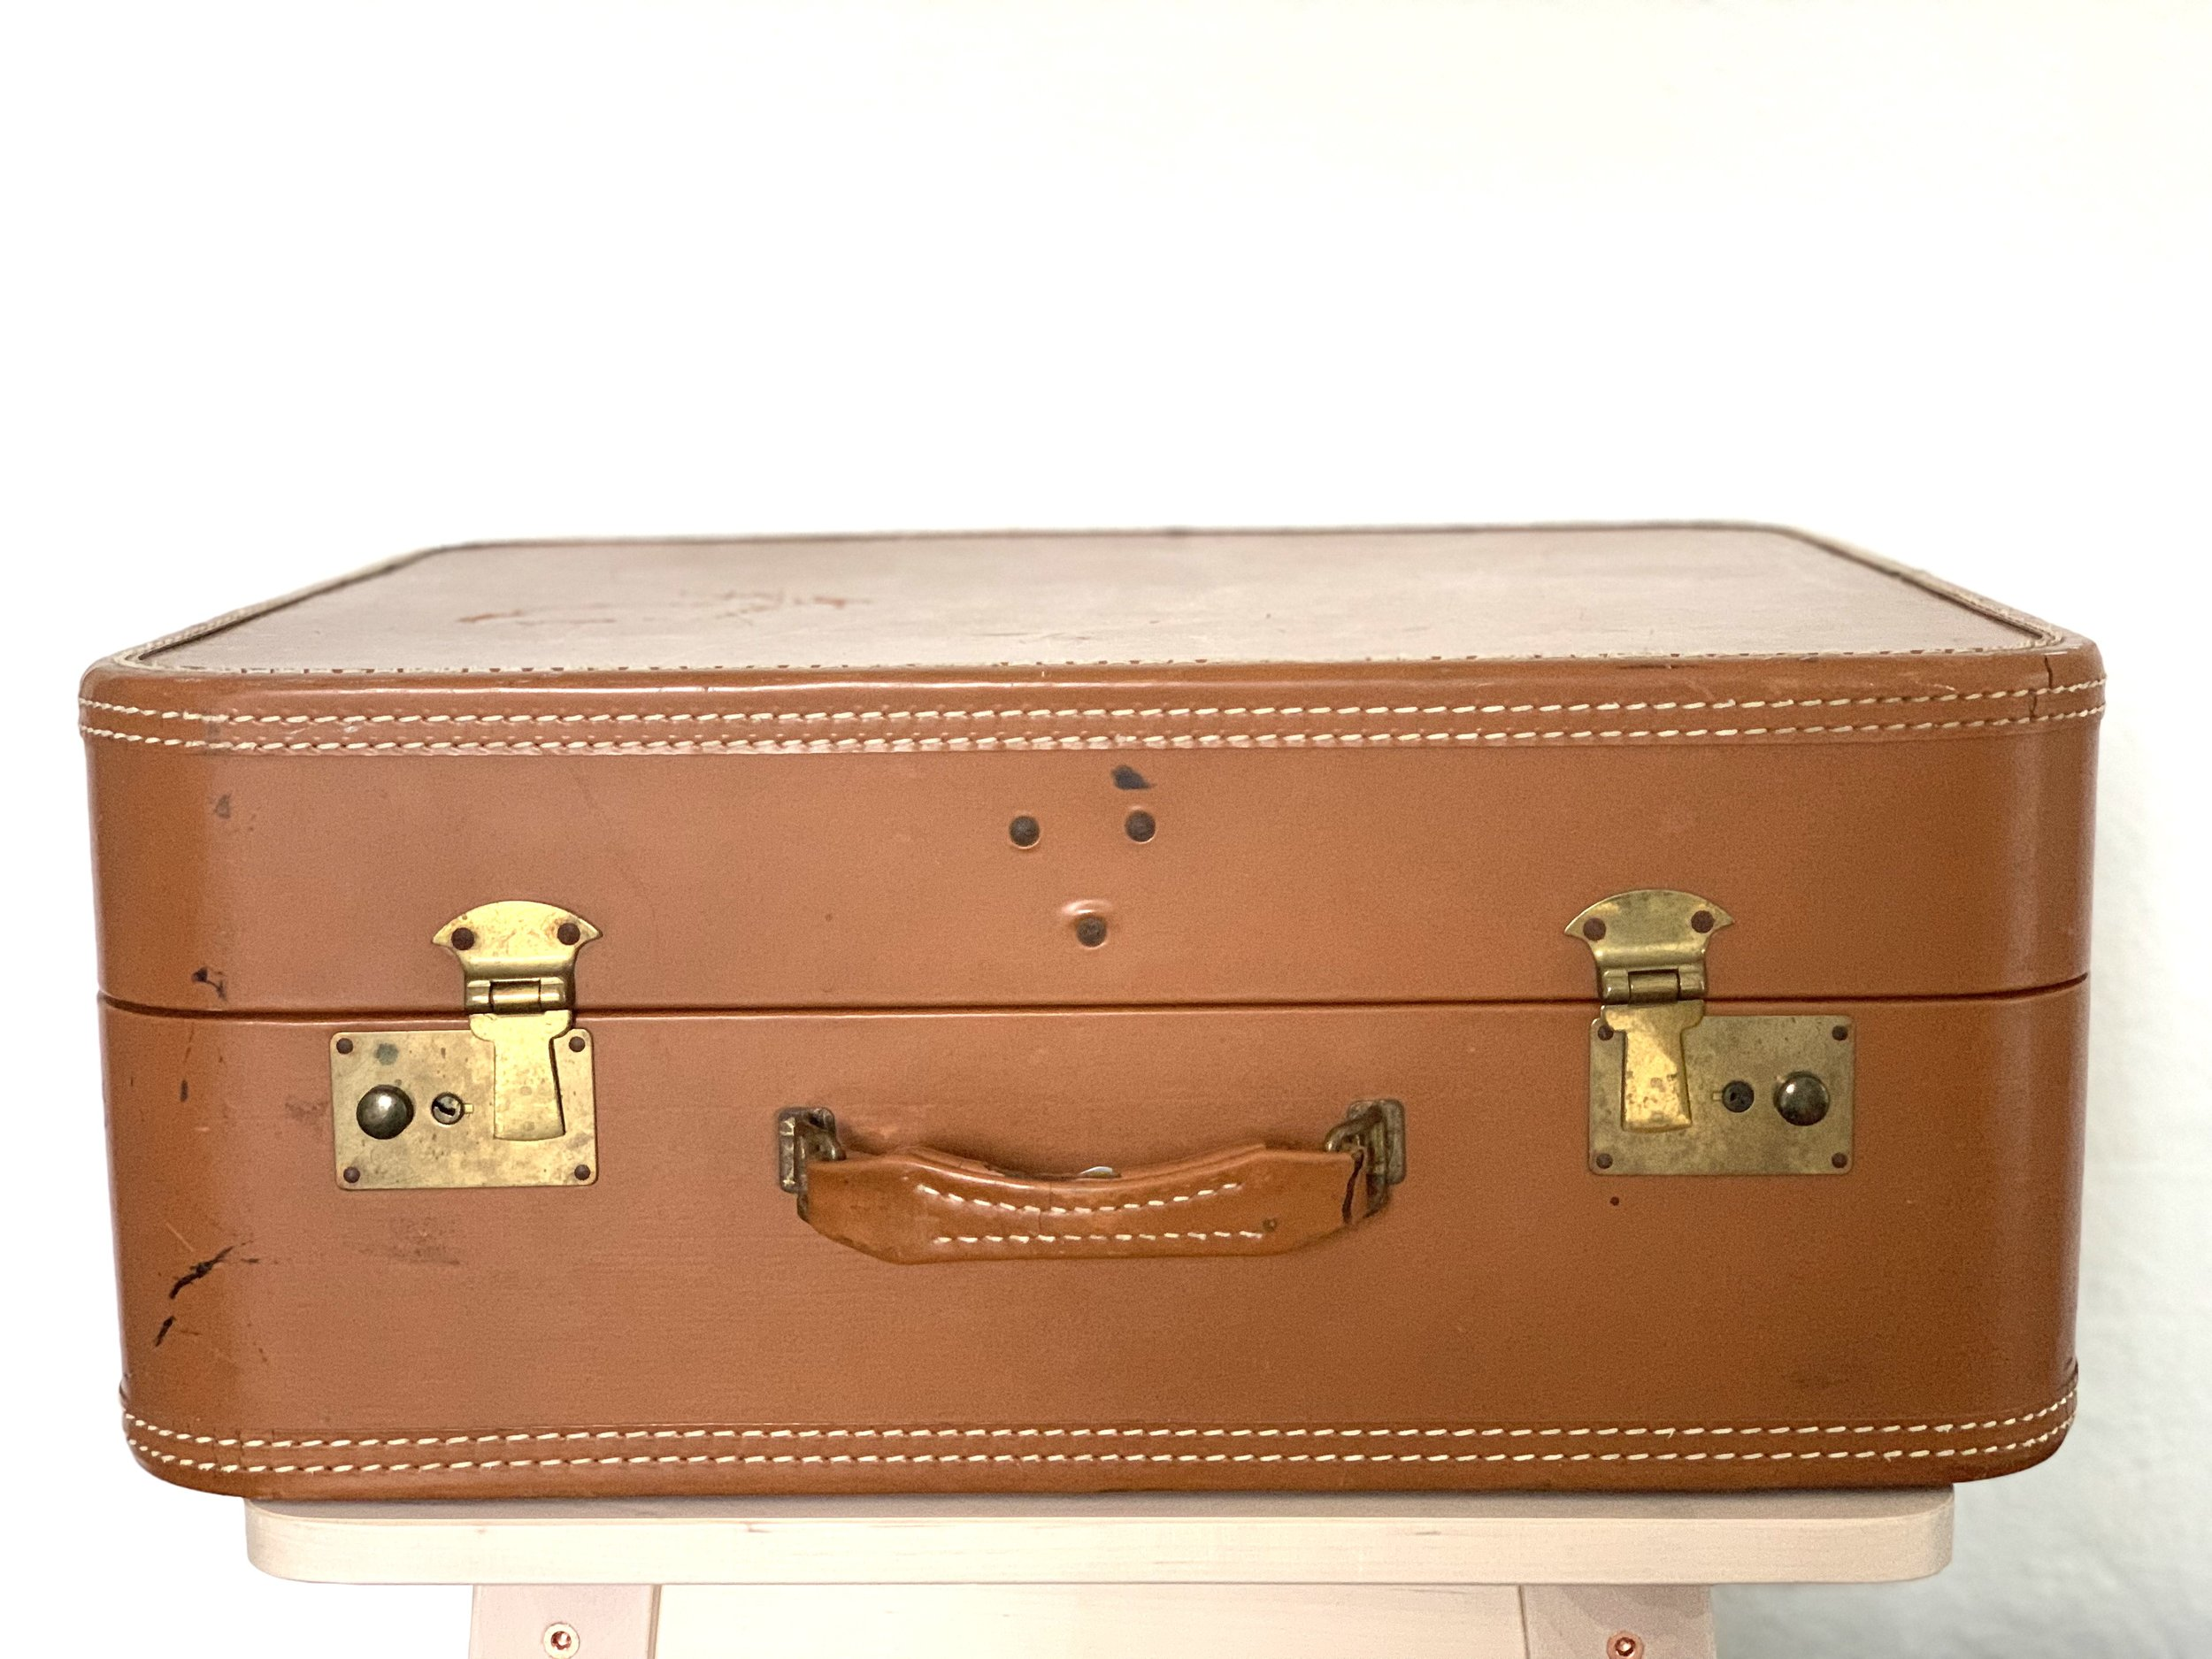 Vintage Brown Leather Suitcase $10